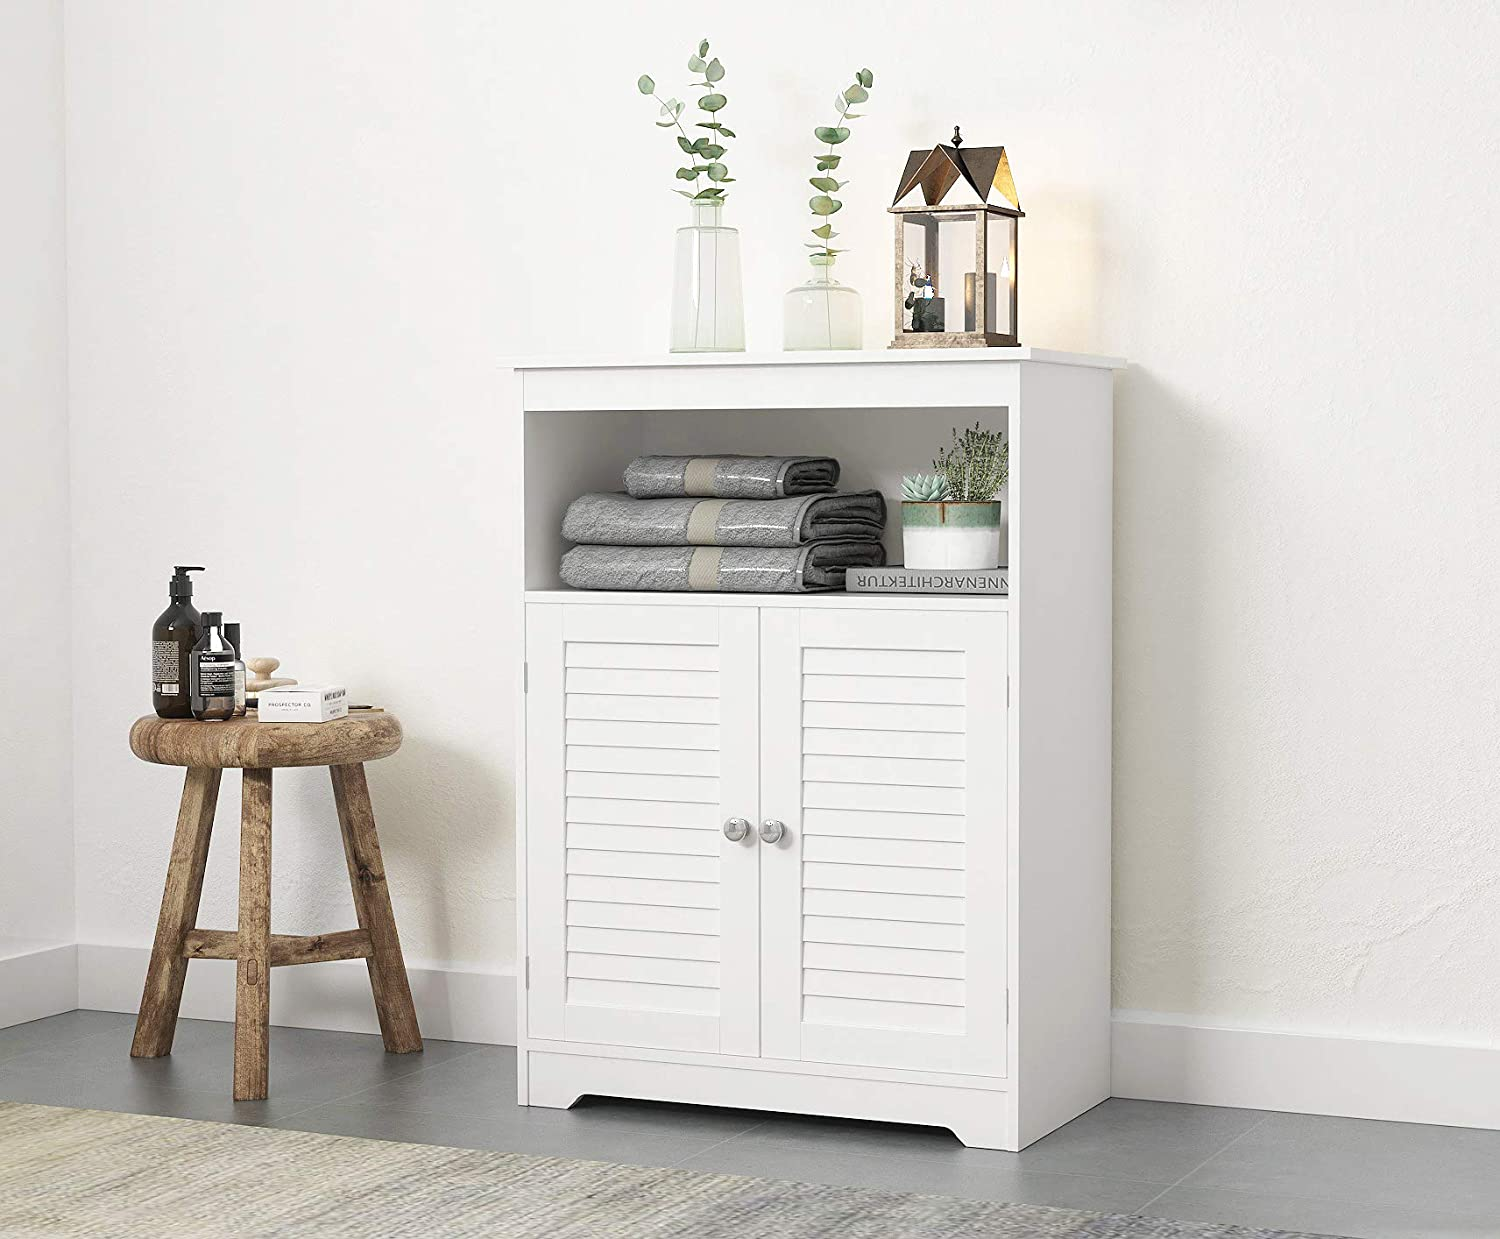 Amazon Com Spirich Bathroom Floor Cabinet With Double Louvered Doors And Adjustable Shelves Free Standing Bathroom Storage Cabinets White Kitchen Dining